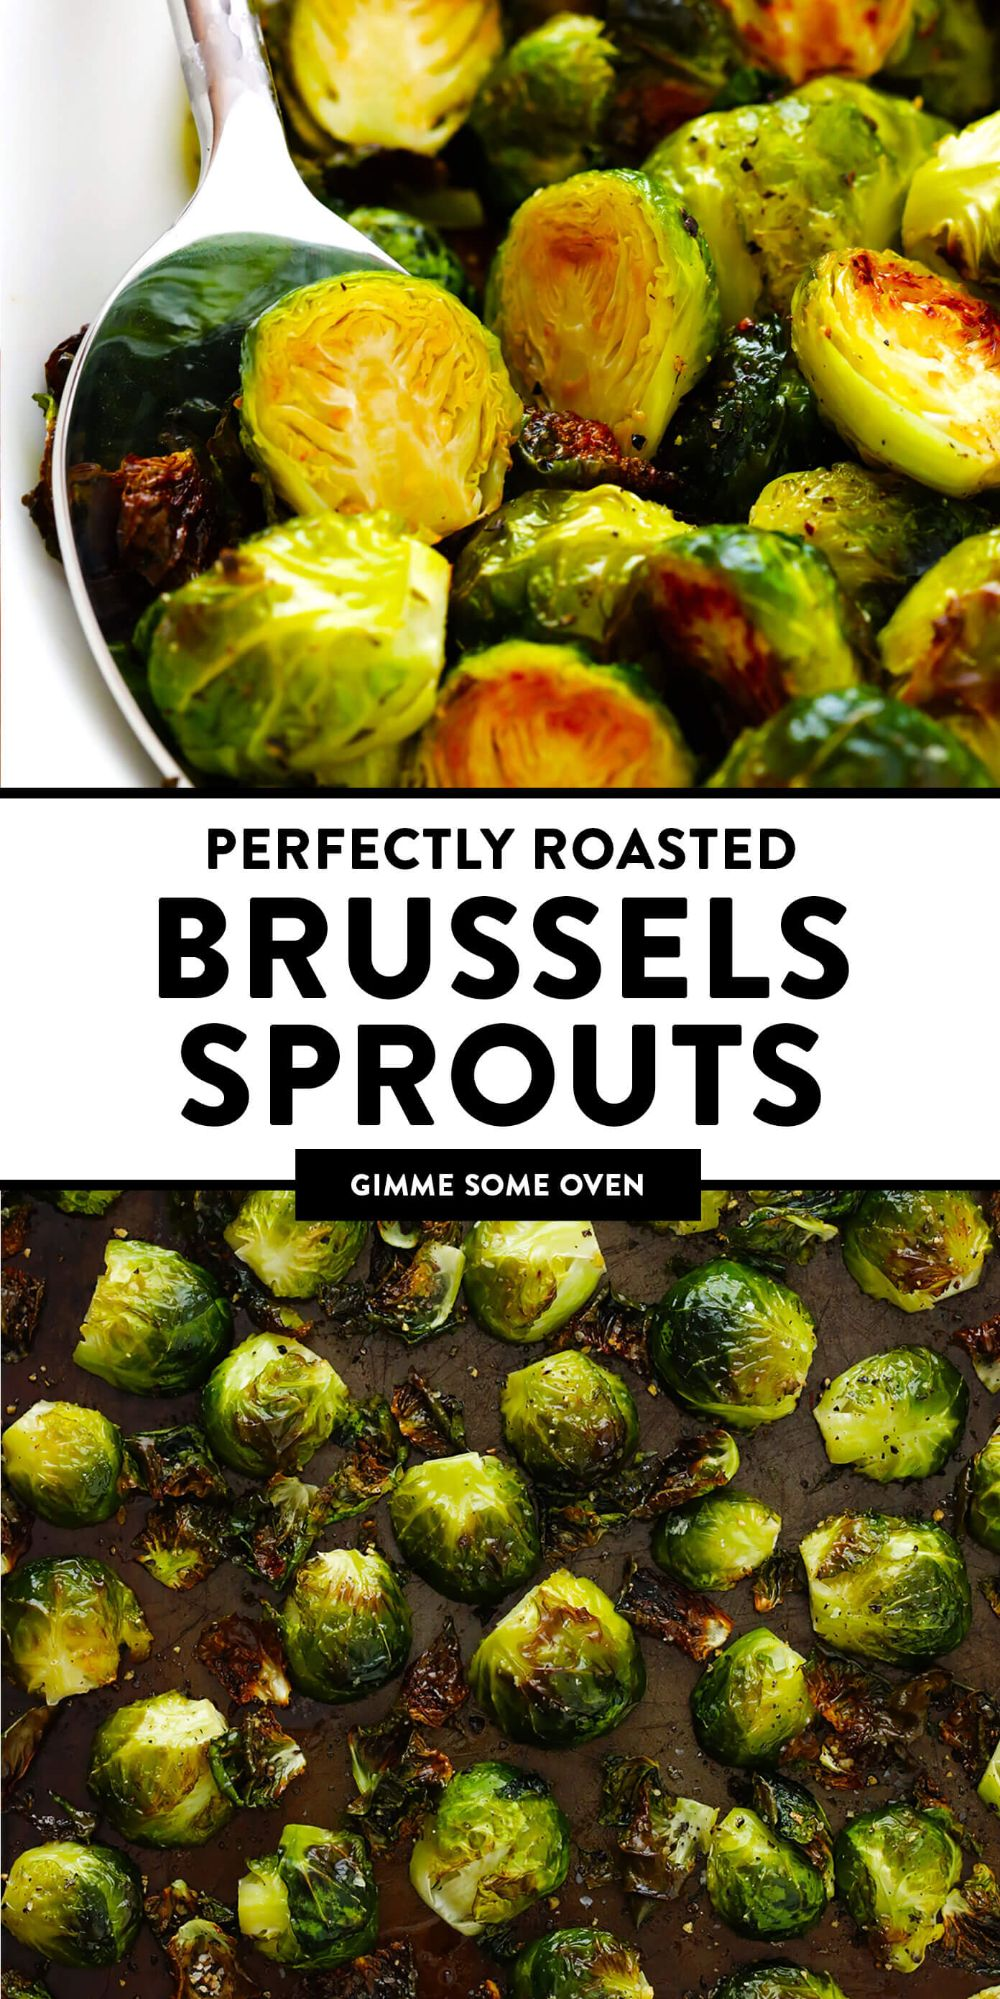 This roasted Brussels sprouts recipe is super easy to make and customize with your favorite seasonings! A great healthy side dish for dinner or the holidays. | gimmesomeoven.com #brussels #sprouts #vegetable #healthy #side #glutenfree #vegetarian #vegan #thanksgiving